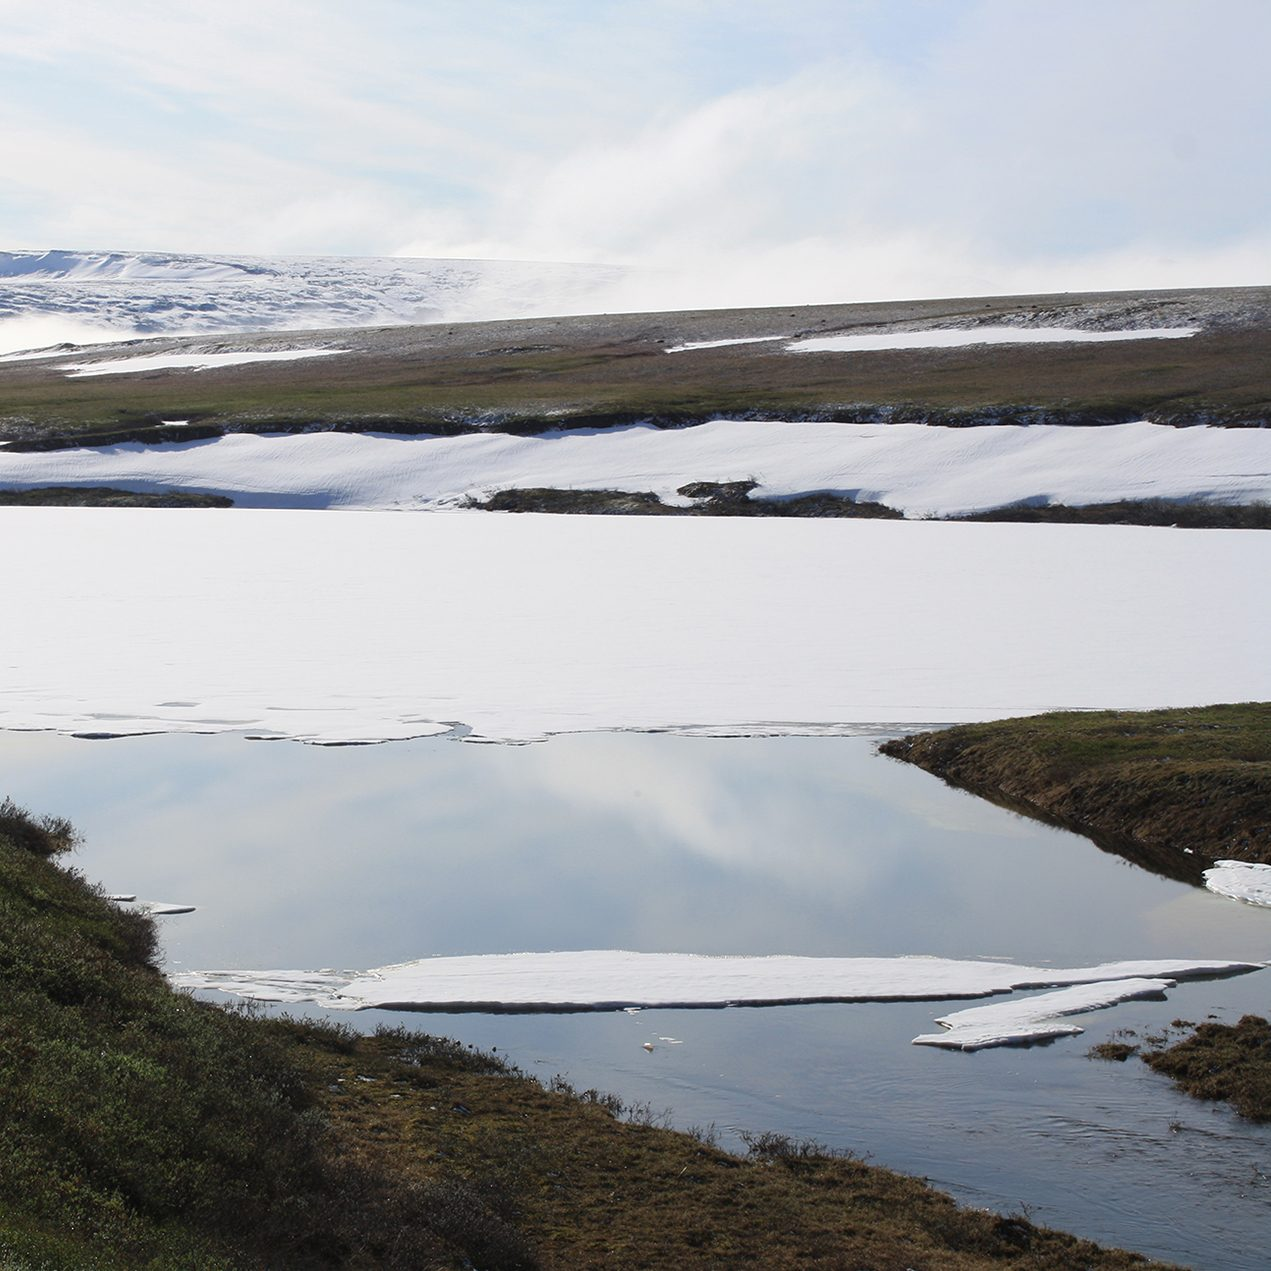 The disappearing snowpack that greeted researchers in Alaska last spring.